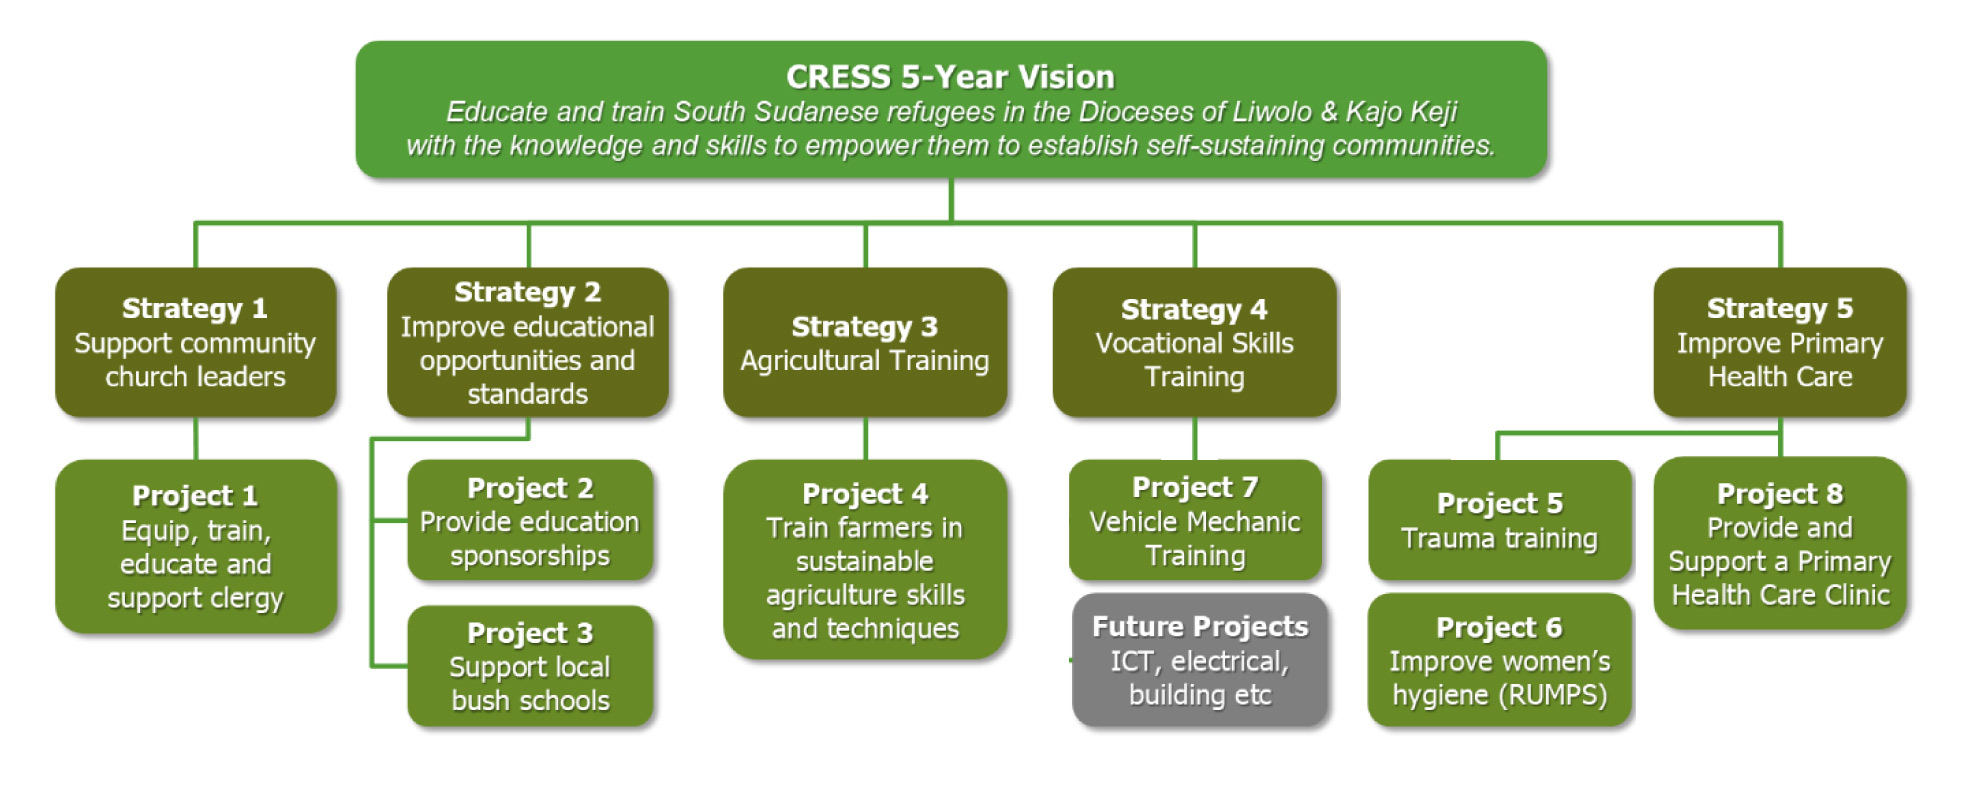 CRESS Charity 5 year Vision for South Sudanese refugees